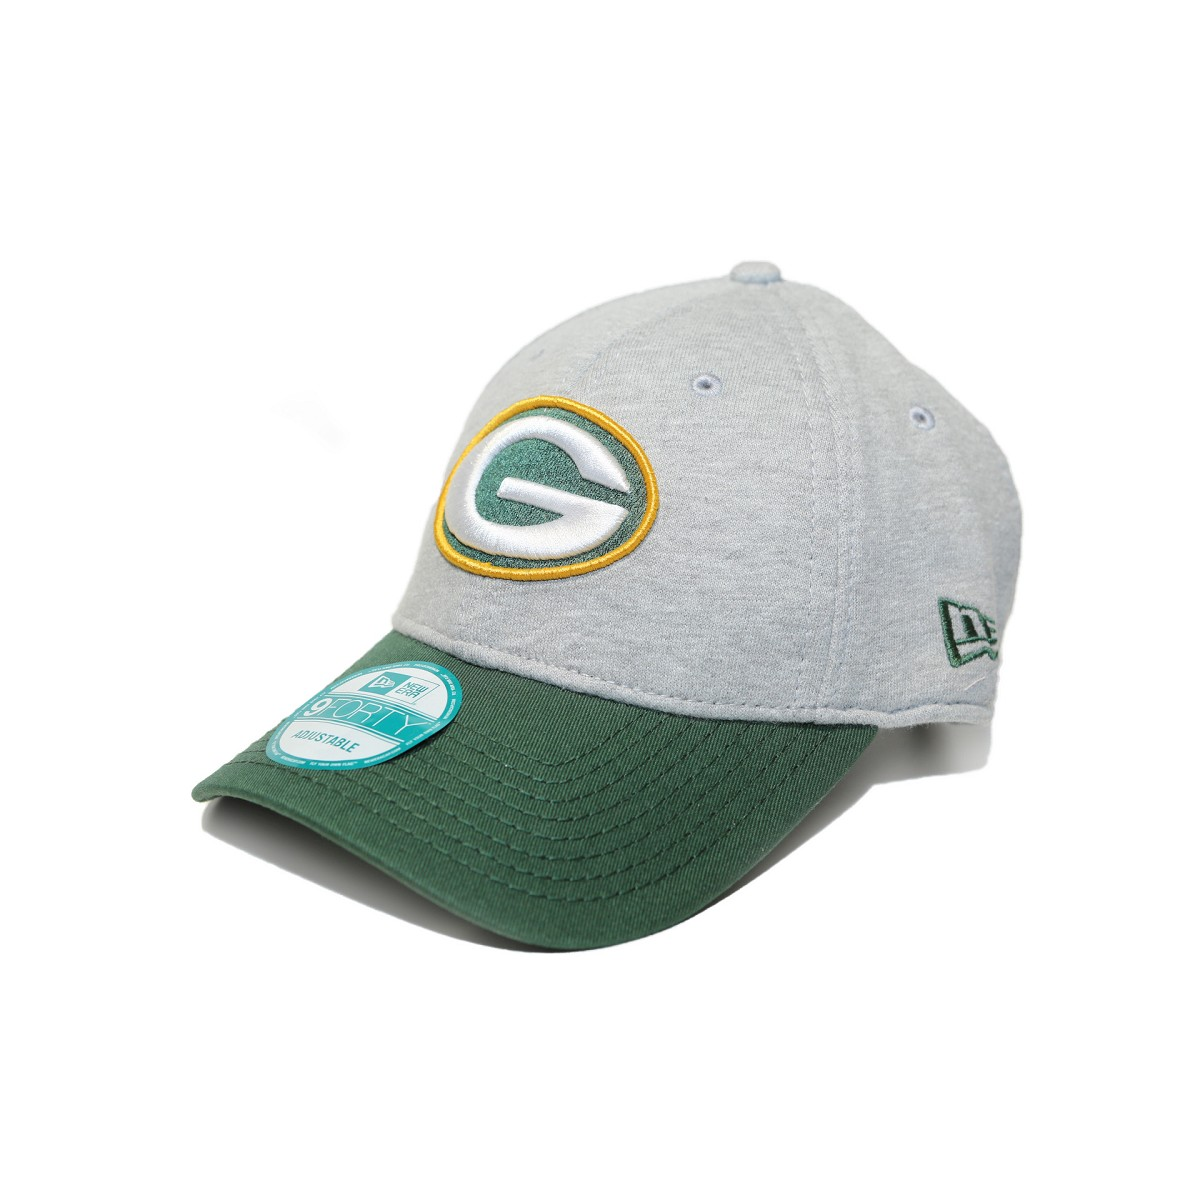 CAPPELLO NEW ERA 9FORTY JERSEY TOP GREEN BAY PACKERS 9FORTY FOOTBALL ... 237d20d186a7